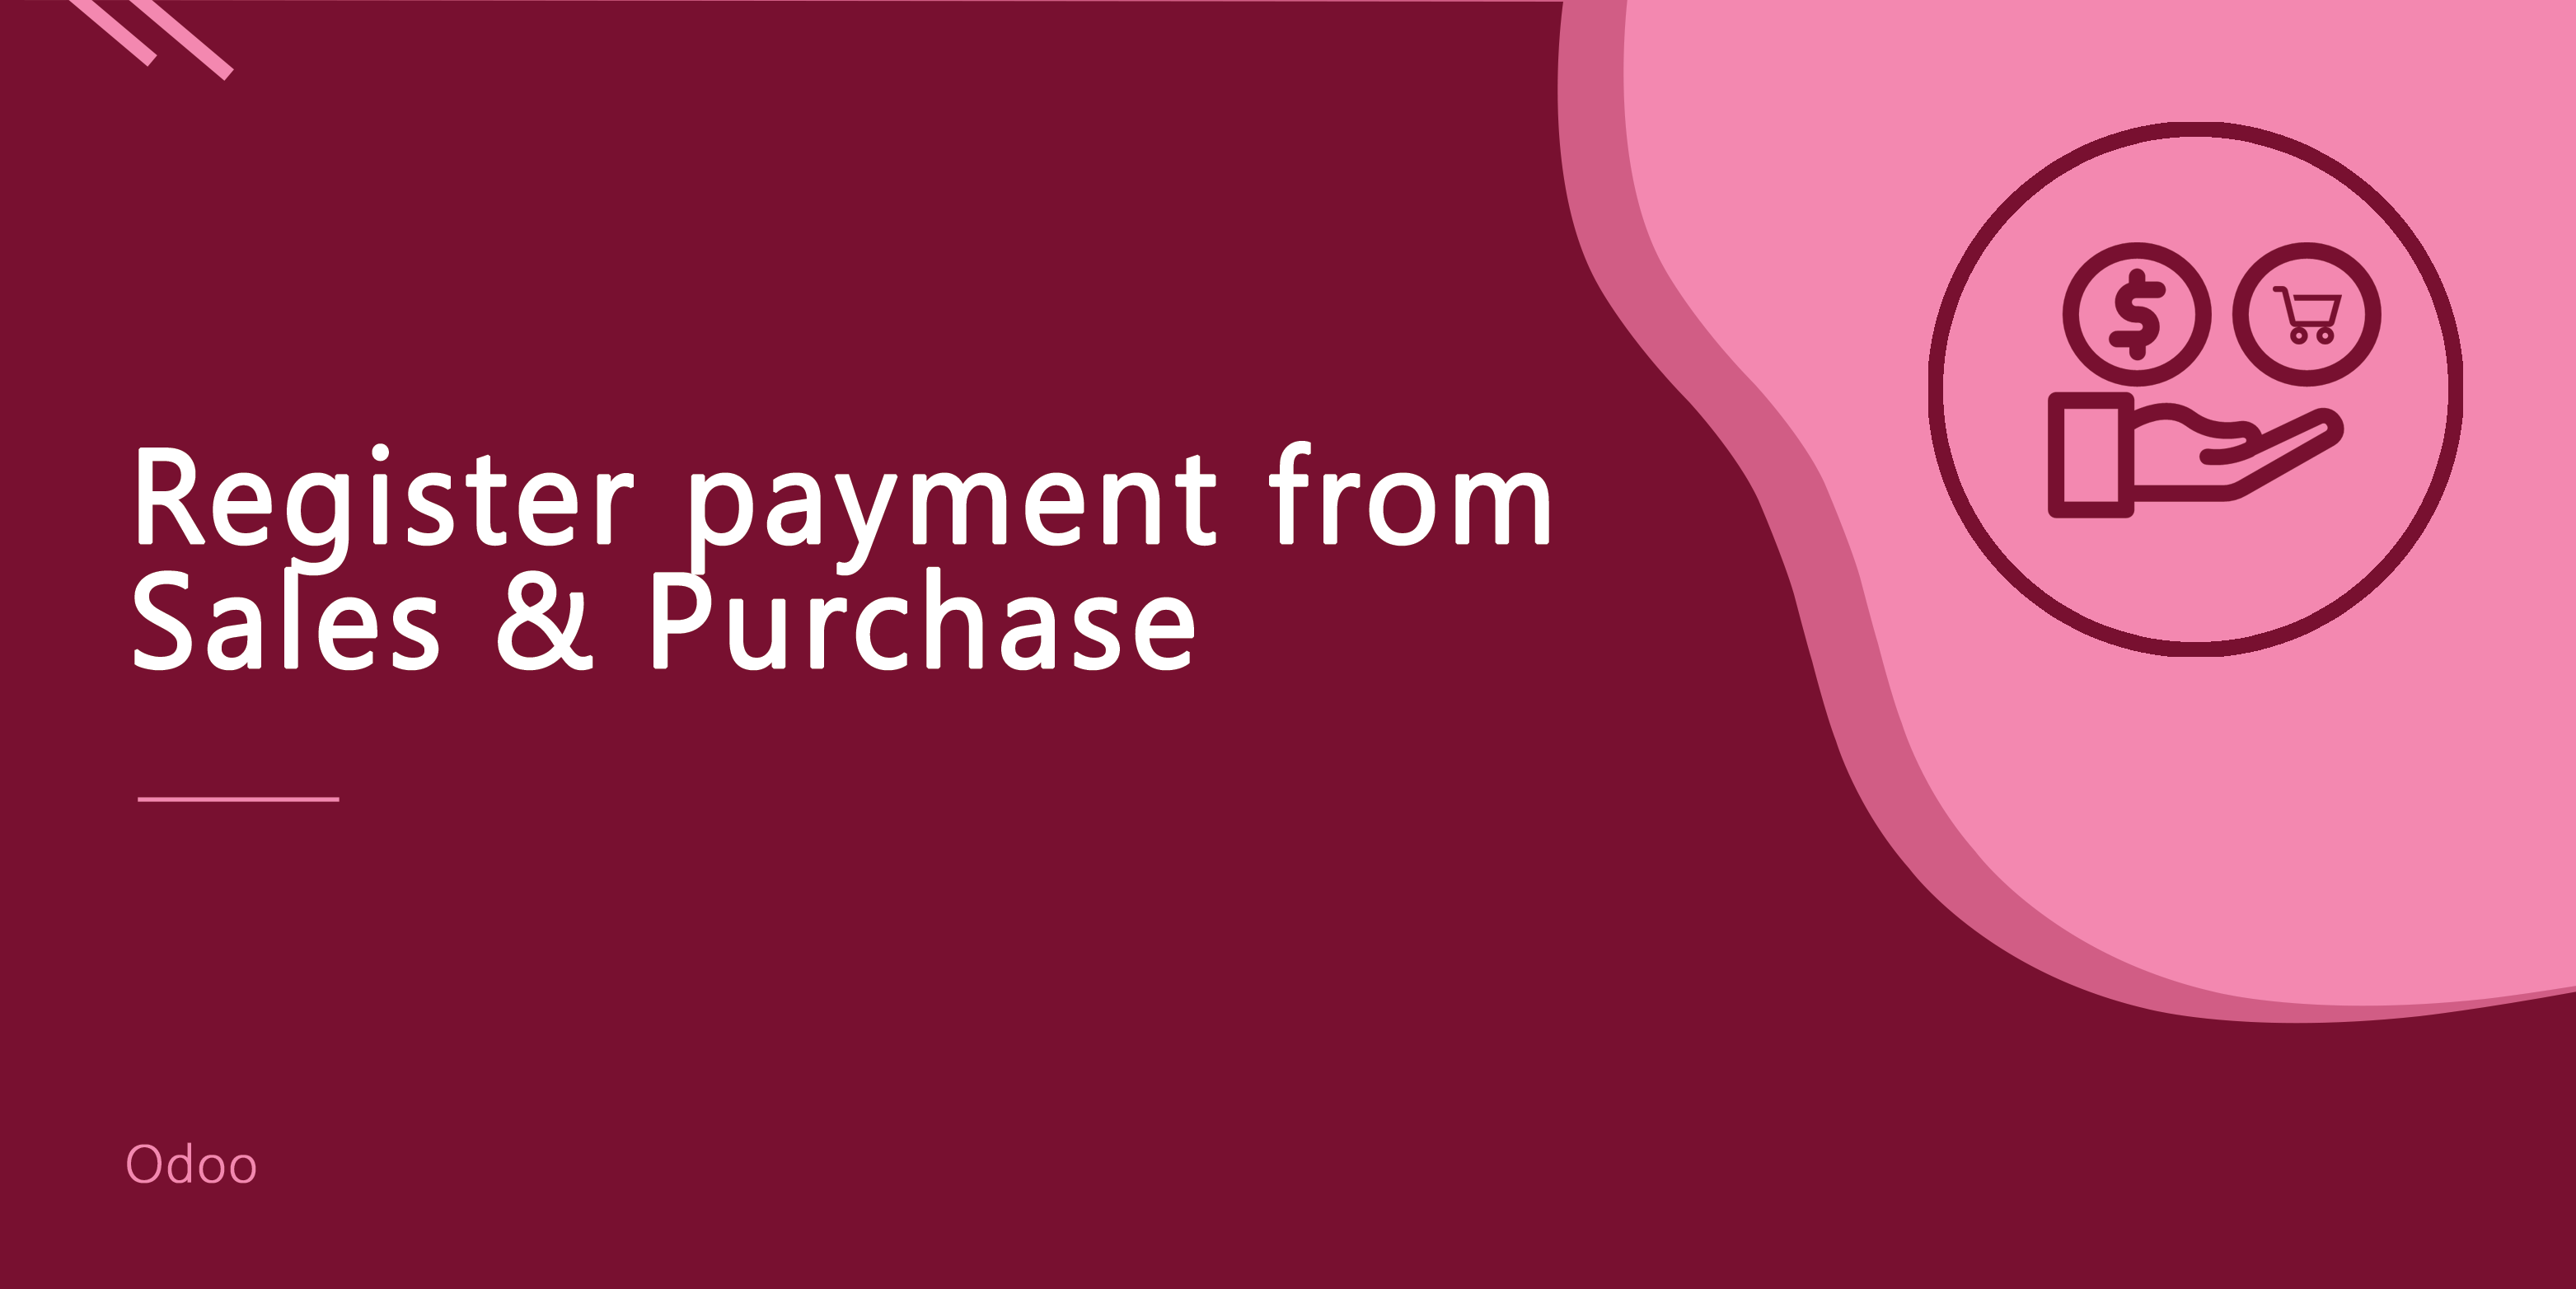 Register Payment From Sale & Purchase